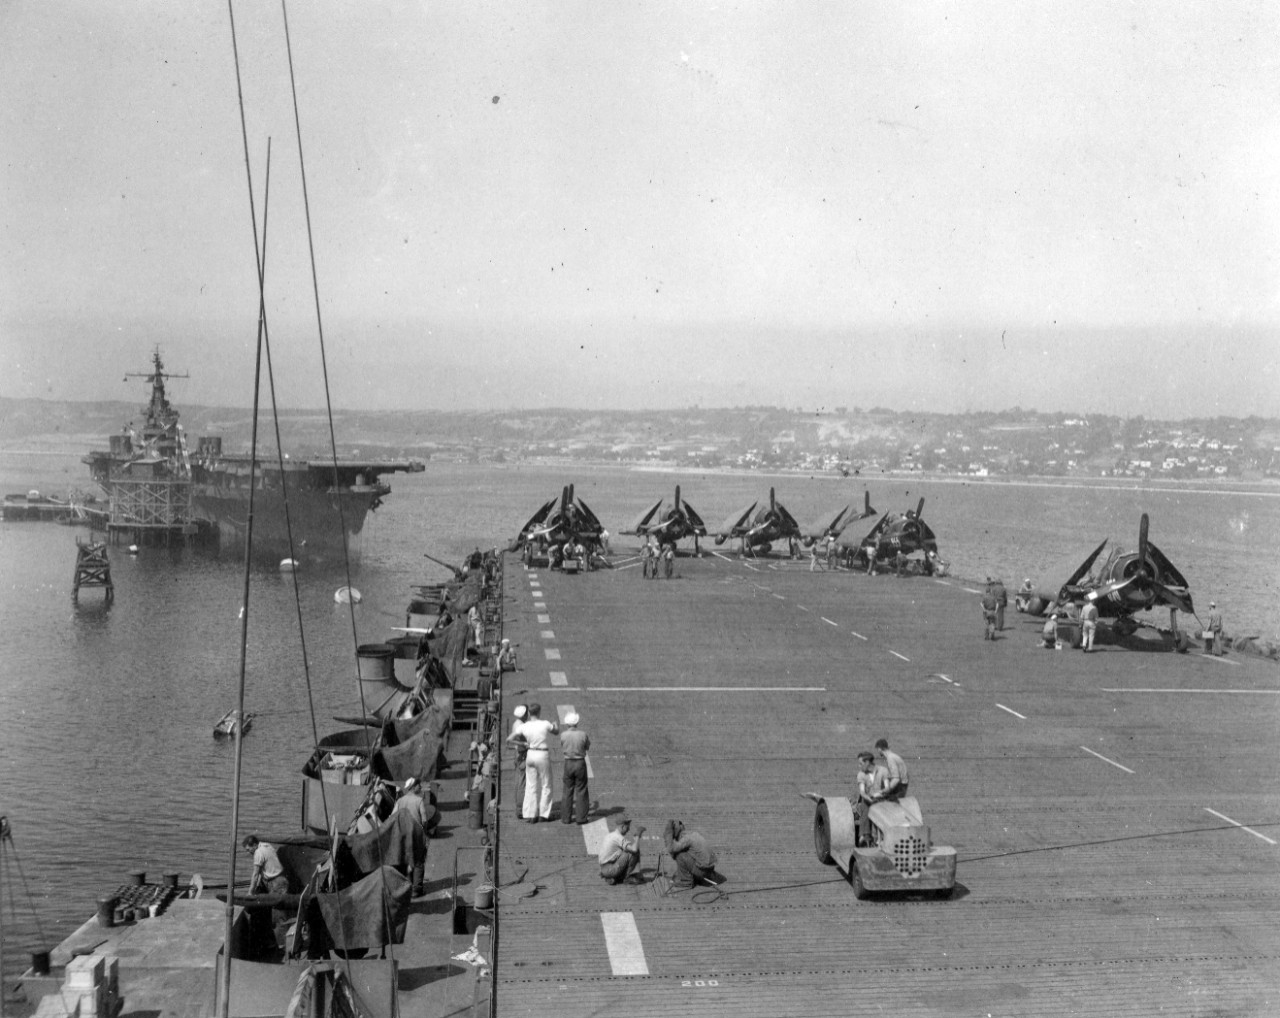 Collection of 14 photos related to the naval service of Frances Goodwin during WWII. The photos contain images of actives onboard USS Shamrock Bay (CVE-84), specifically Crossing the Line Ceremonies and loading aircraft onto the ship while at North Island, San Diego, CA, September 14, 1945 (V-J Day). The collection also includes a crew photo celebrating and cheering the end of WWII after the official announcement. It is not known if Goodwin is in the photo of the crew. There is also an undated image of USS PT-10 in New York Harbor (Statue of Liberty is in the background). Also in the collection is a typed narrative dated September 7, 1945 on the history of the WWII service of USS Shamrock Bay.